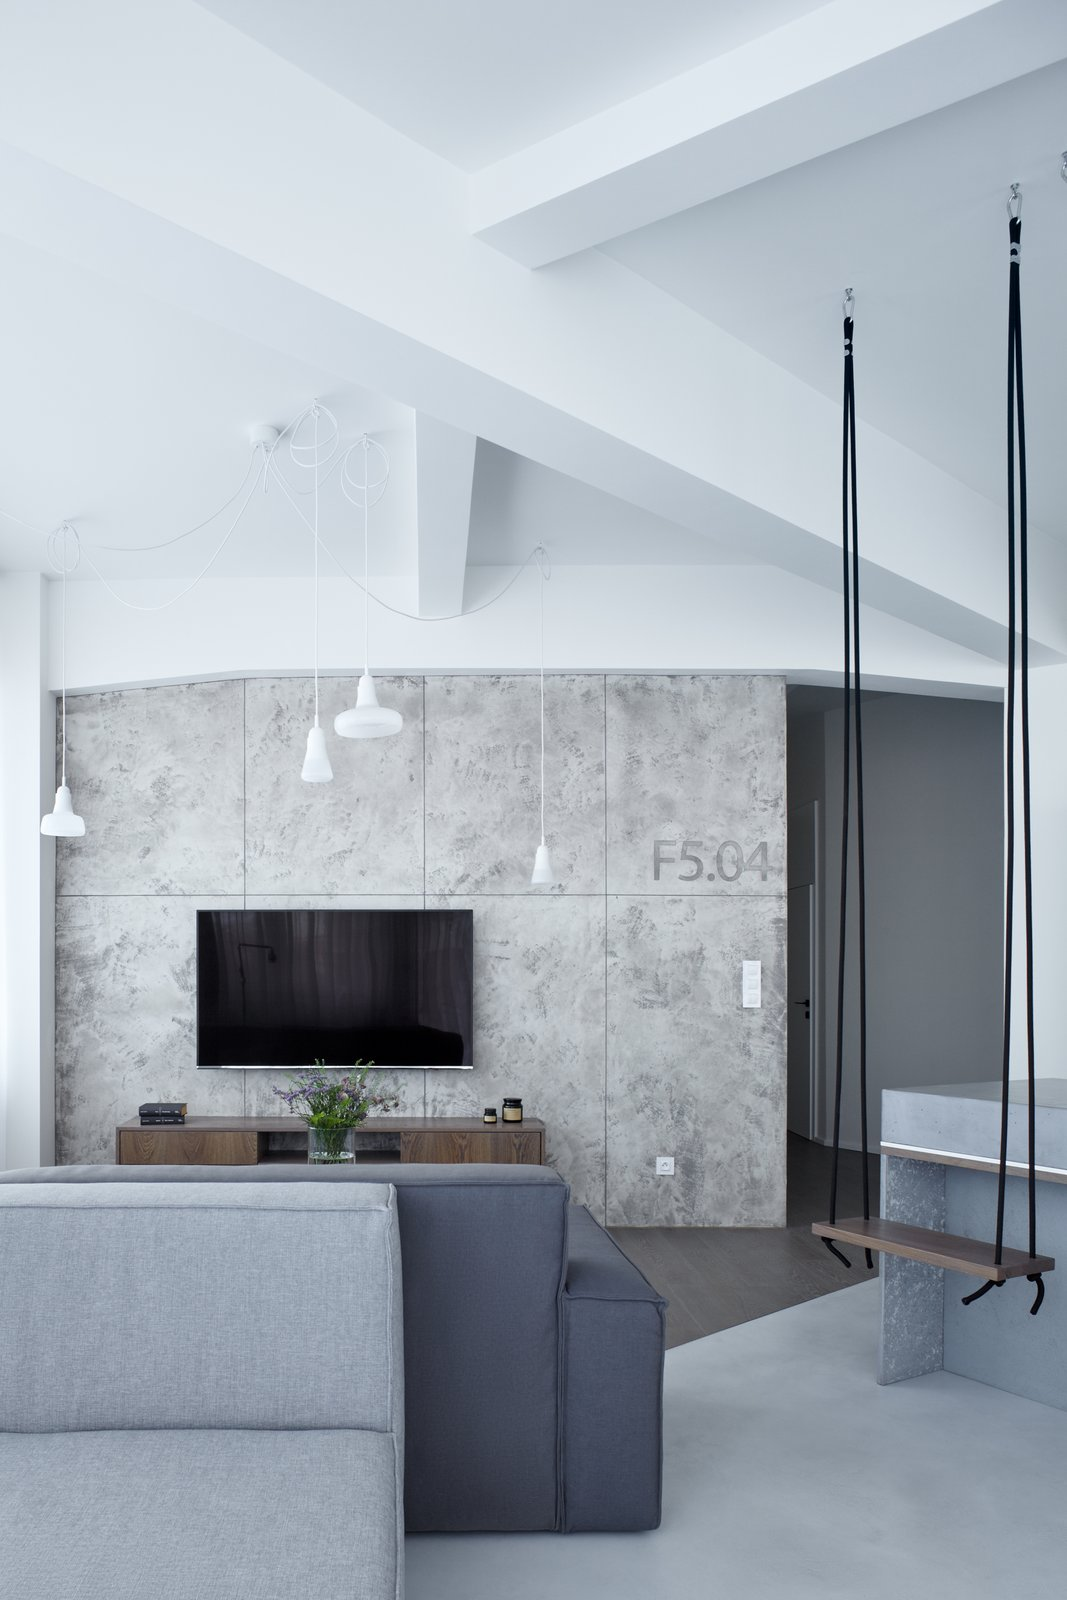 LOFT F5.04 by BoysPlayNice Photography & Concept